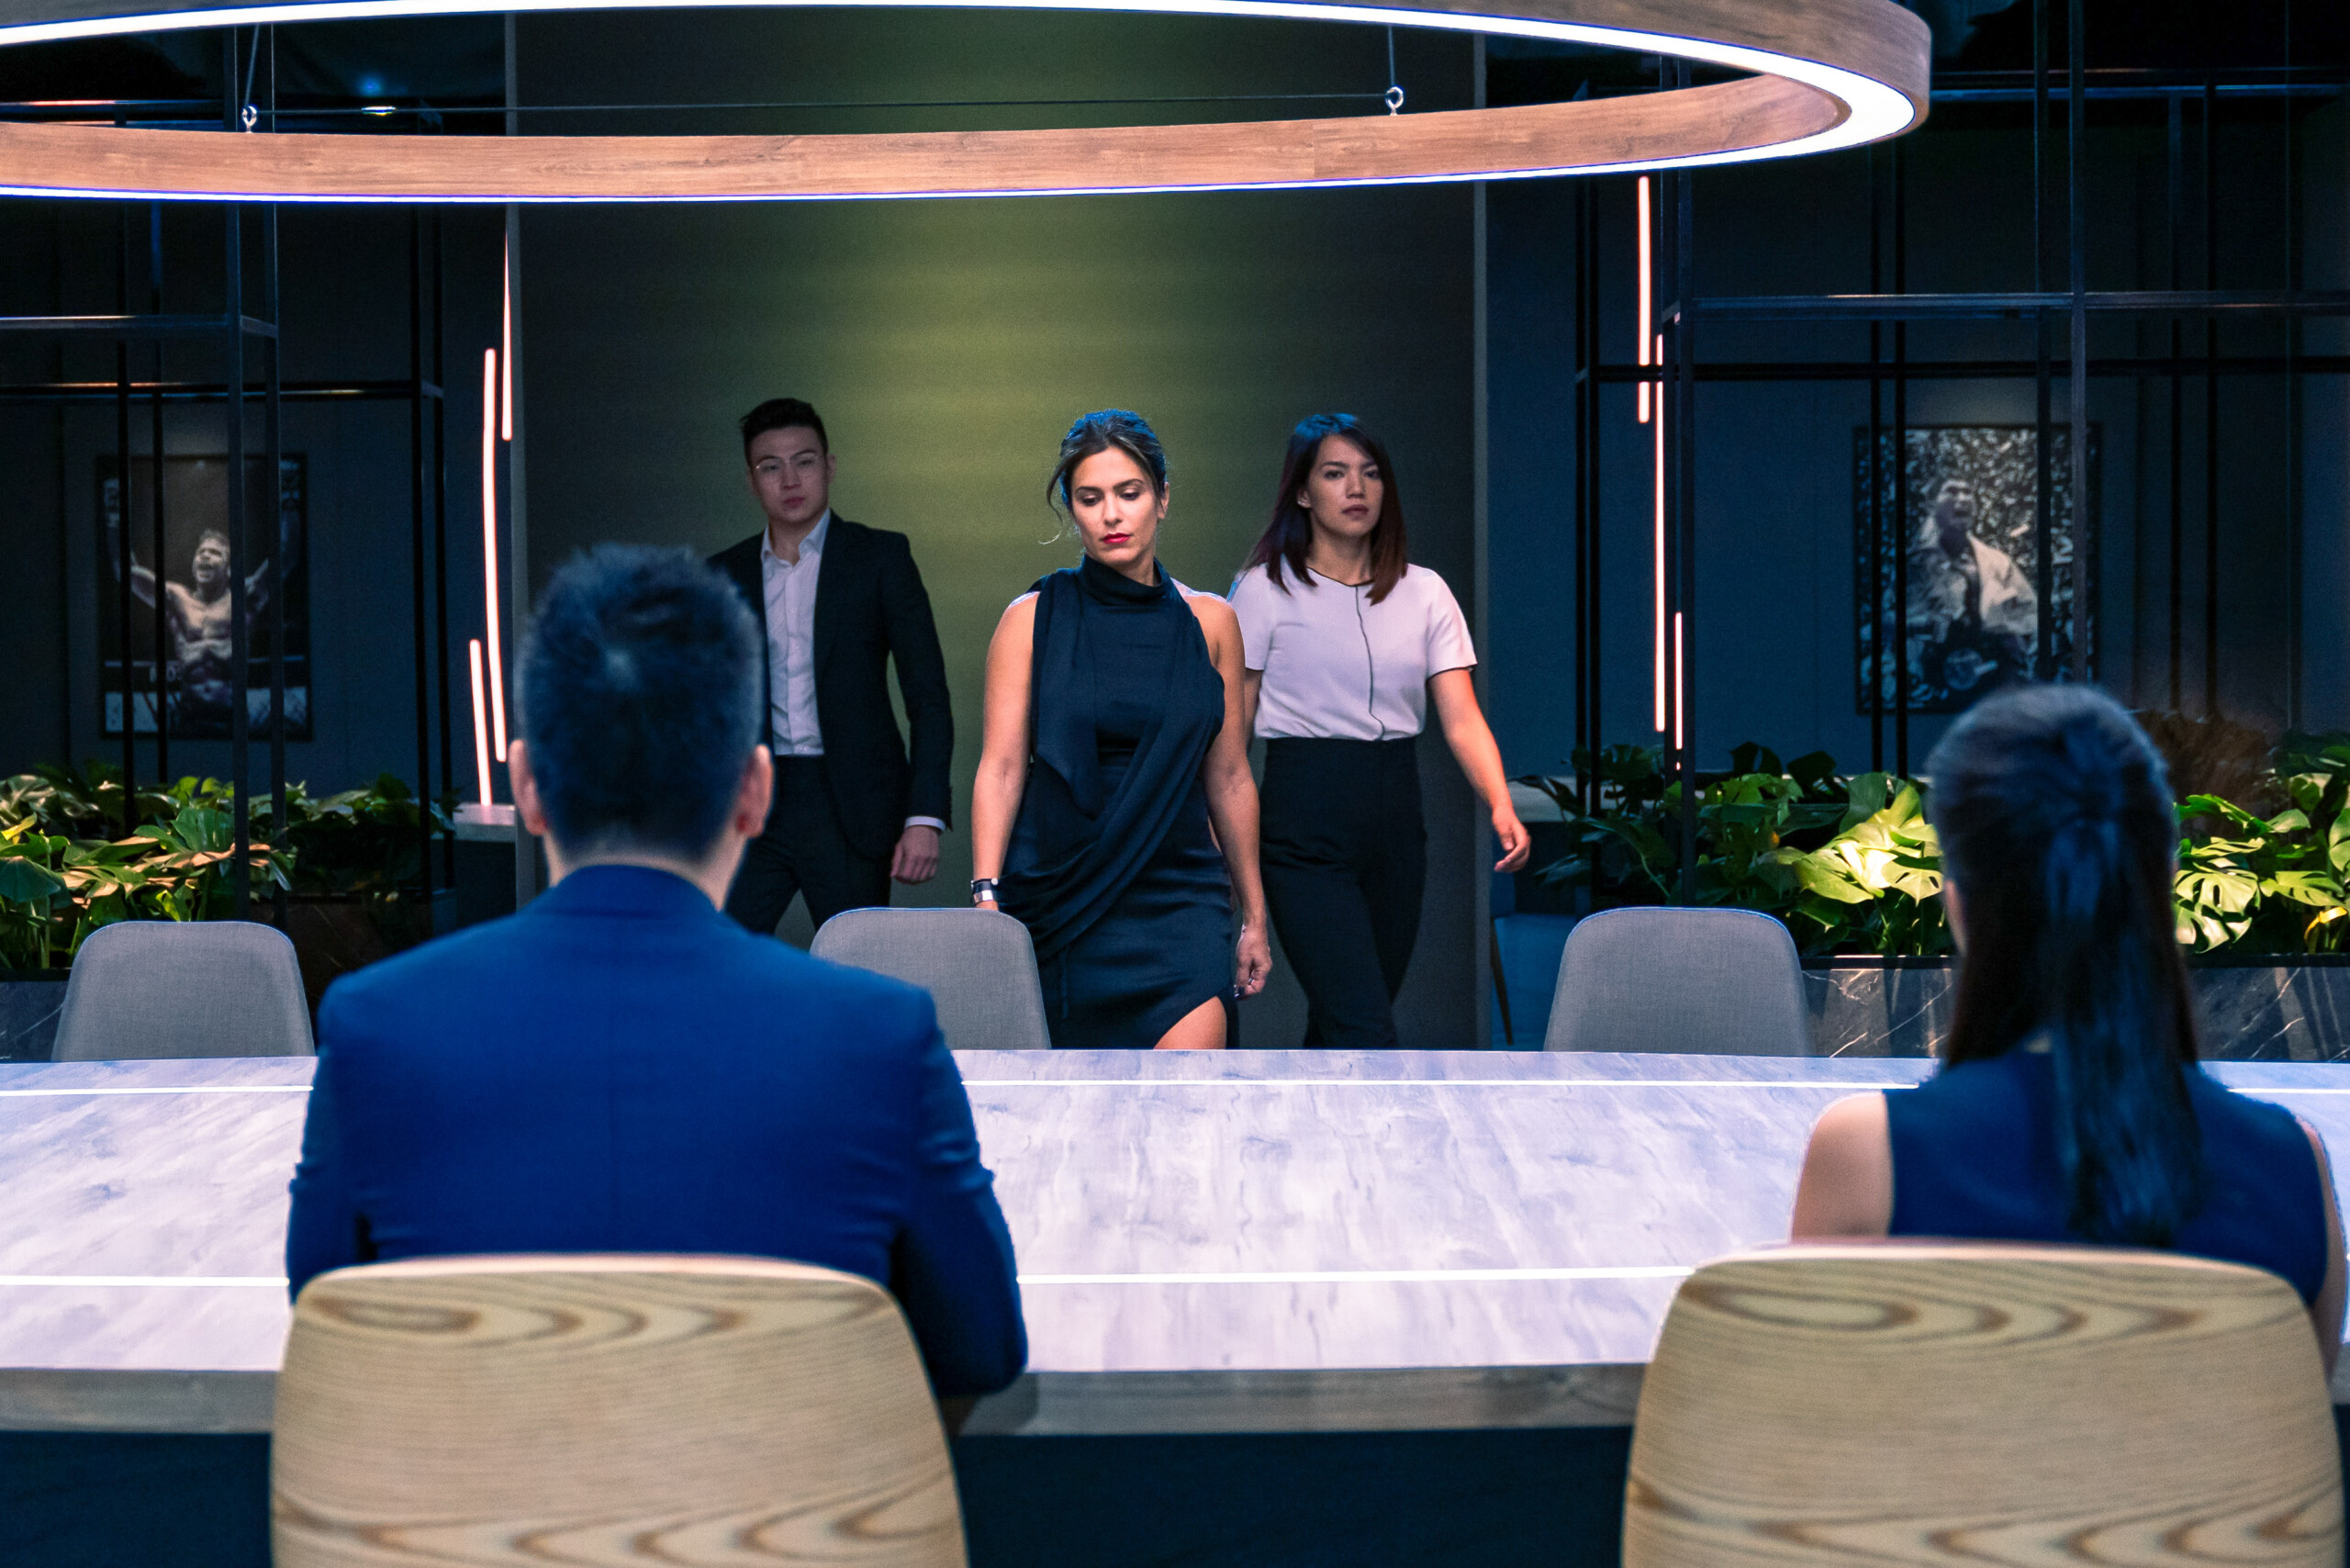 Nazee, Alvin, and Lara come back into the boardroom